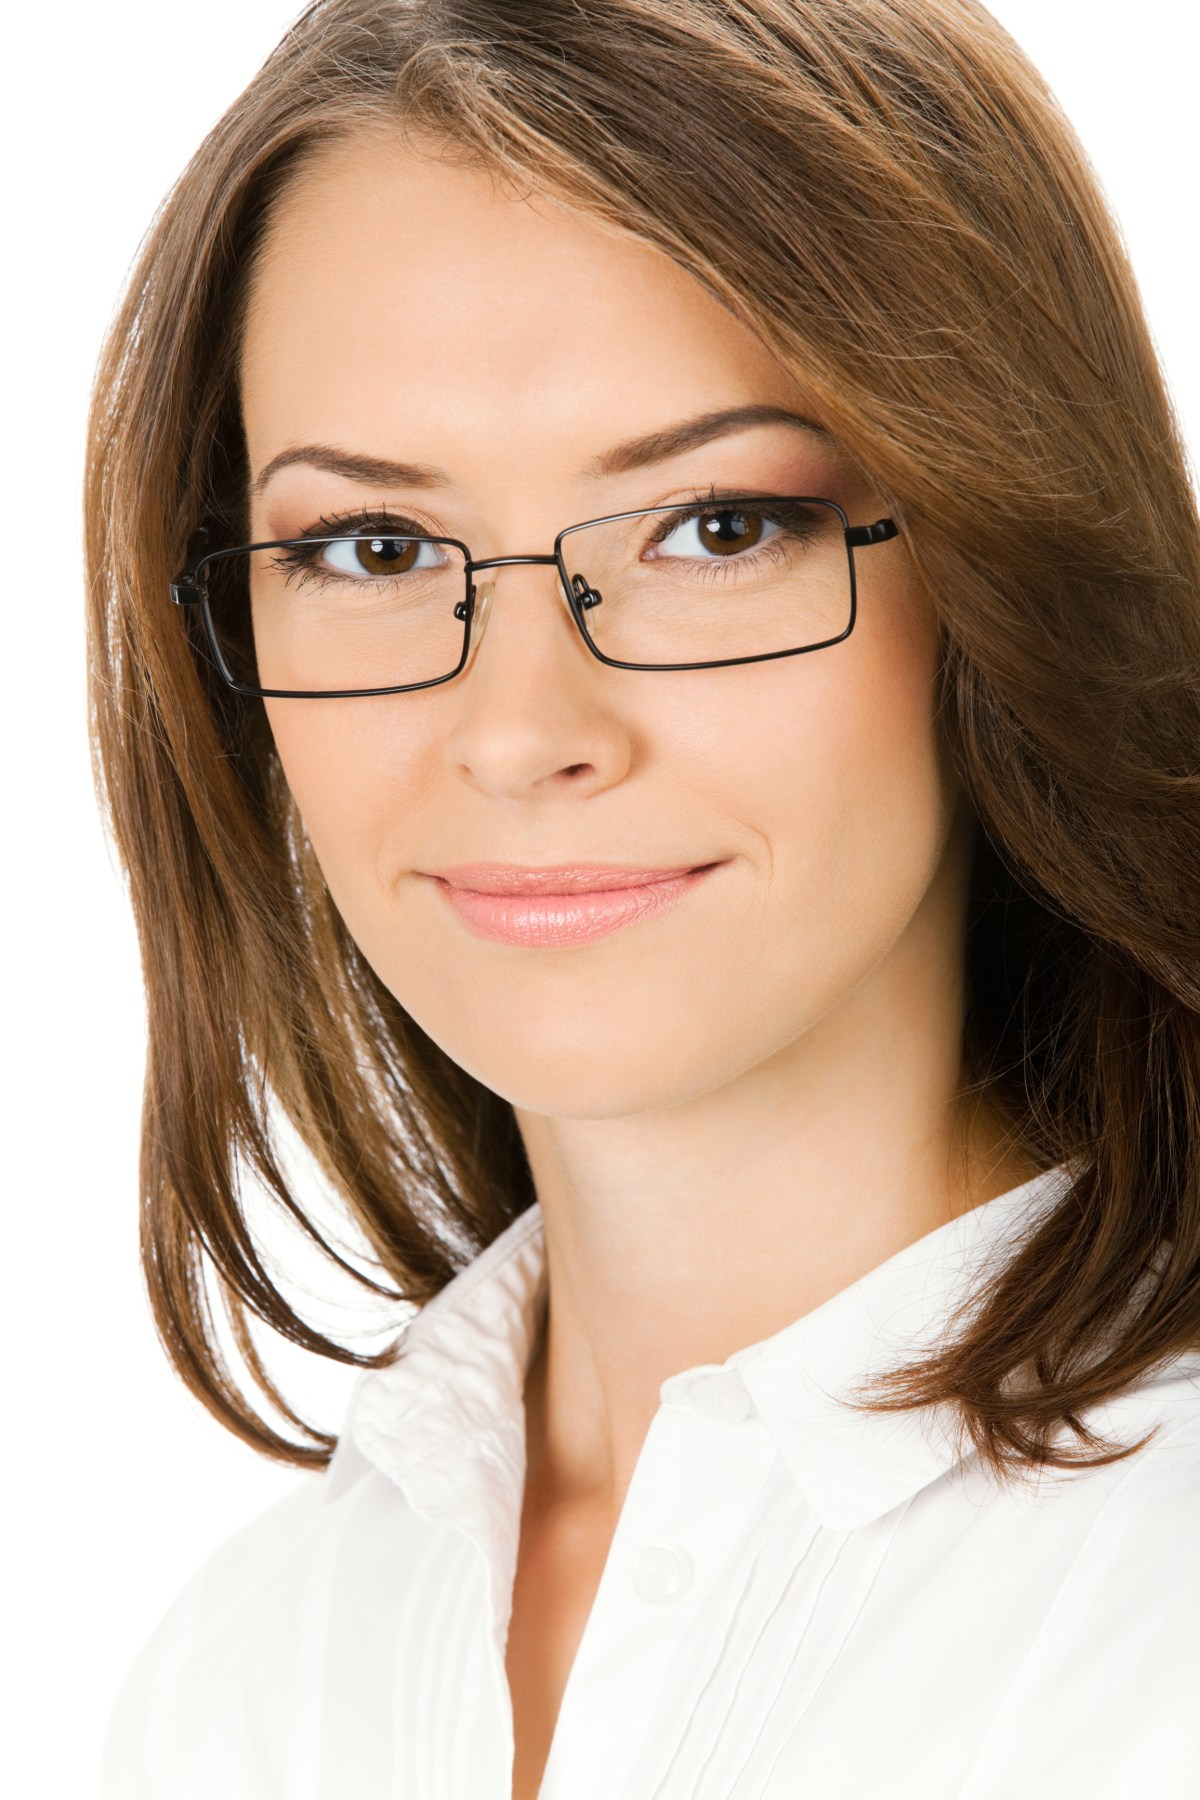 Portrait of happy smiling cheerful young business woman in glasses, isolated on white background